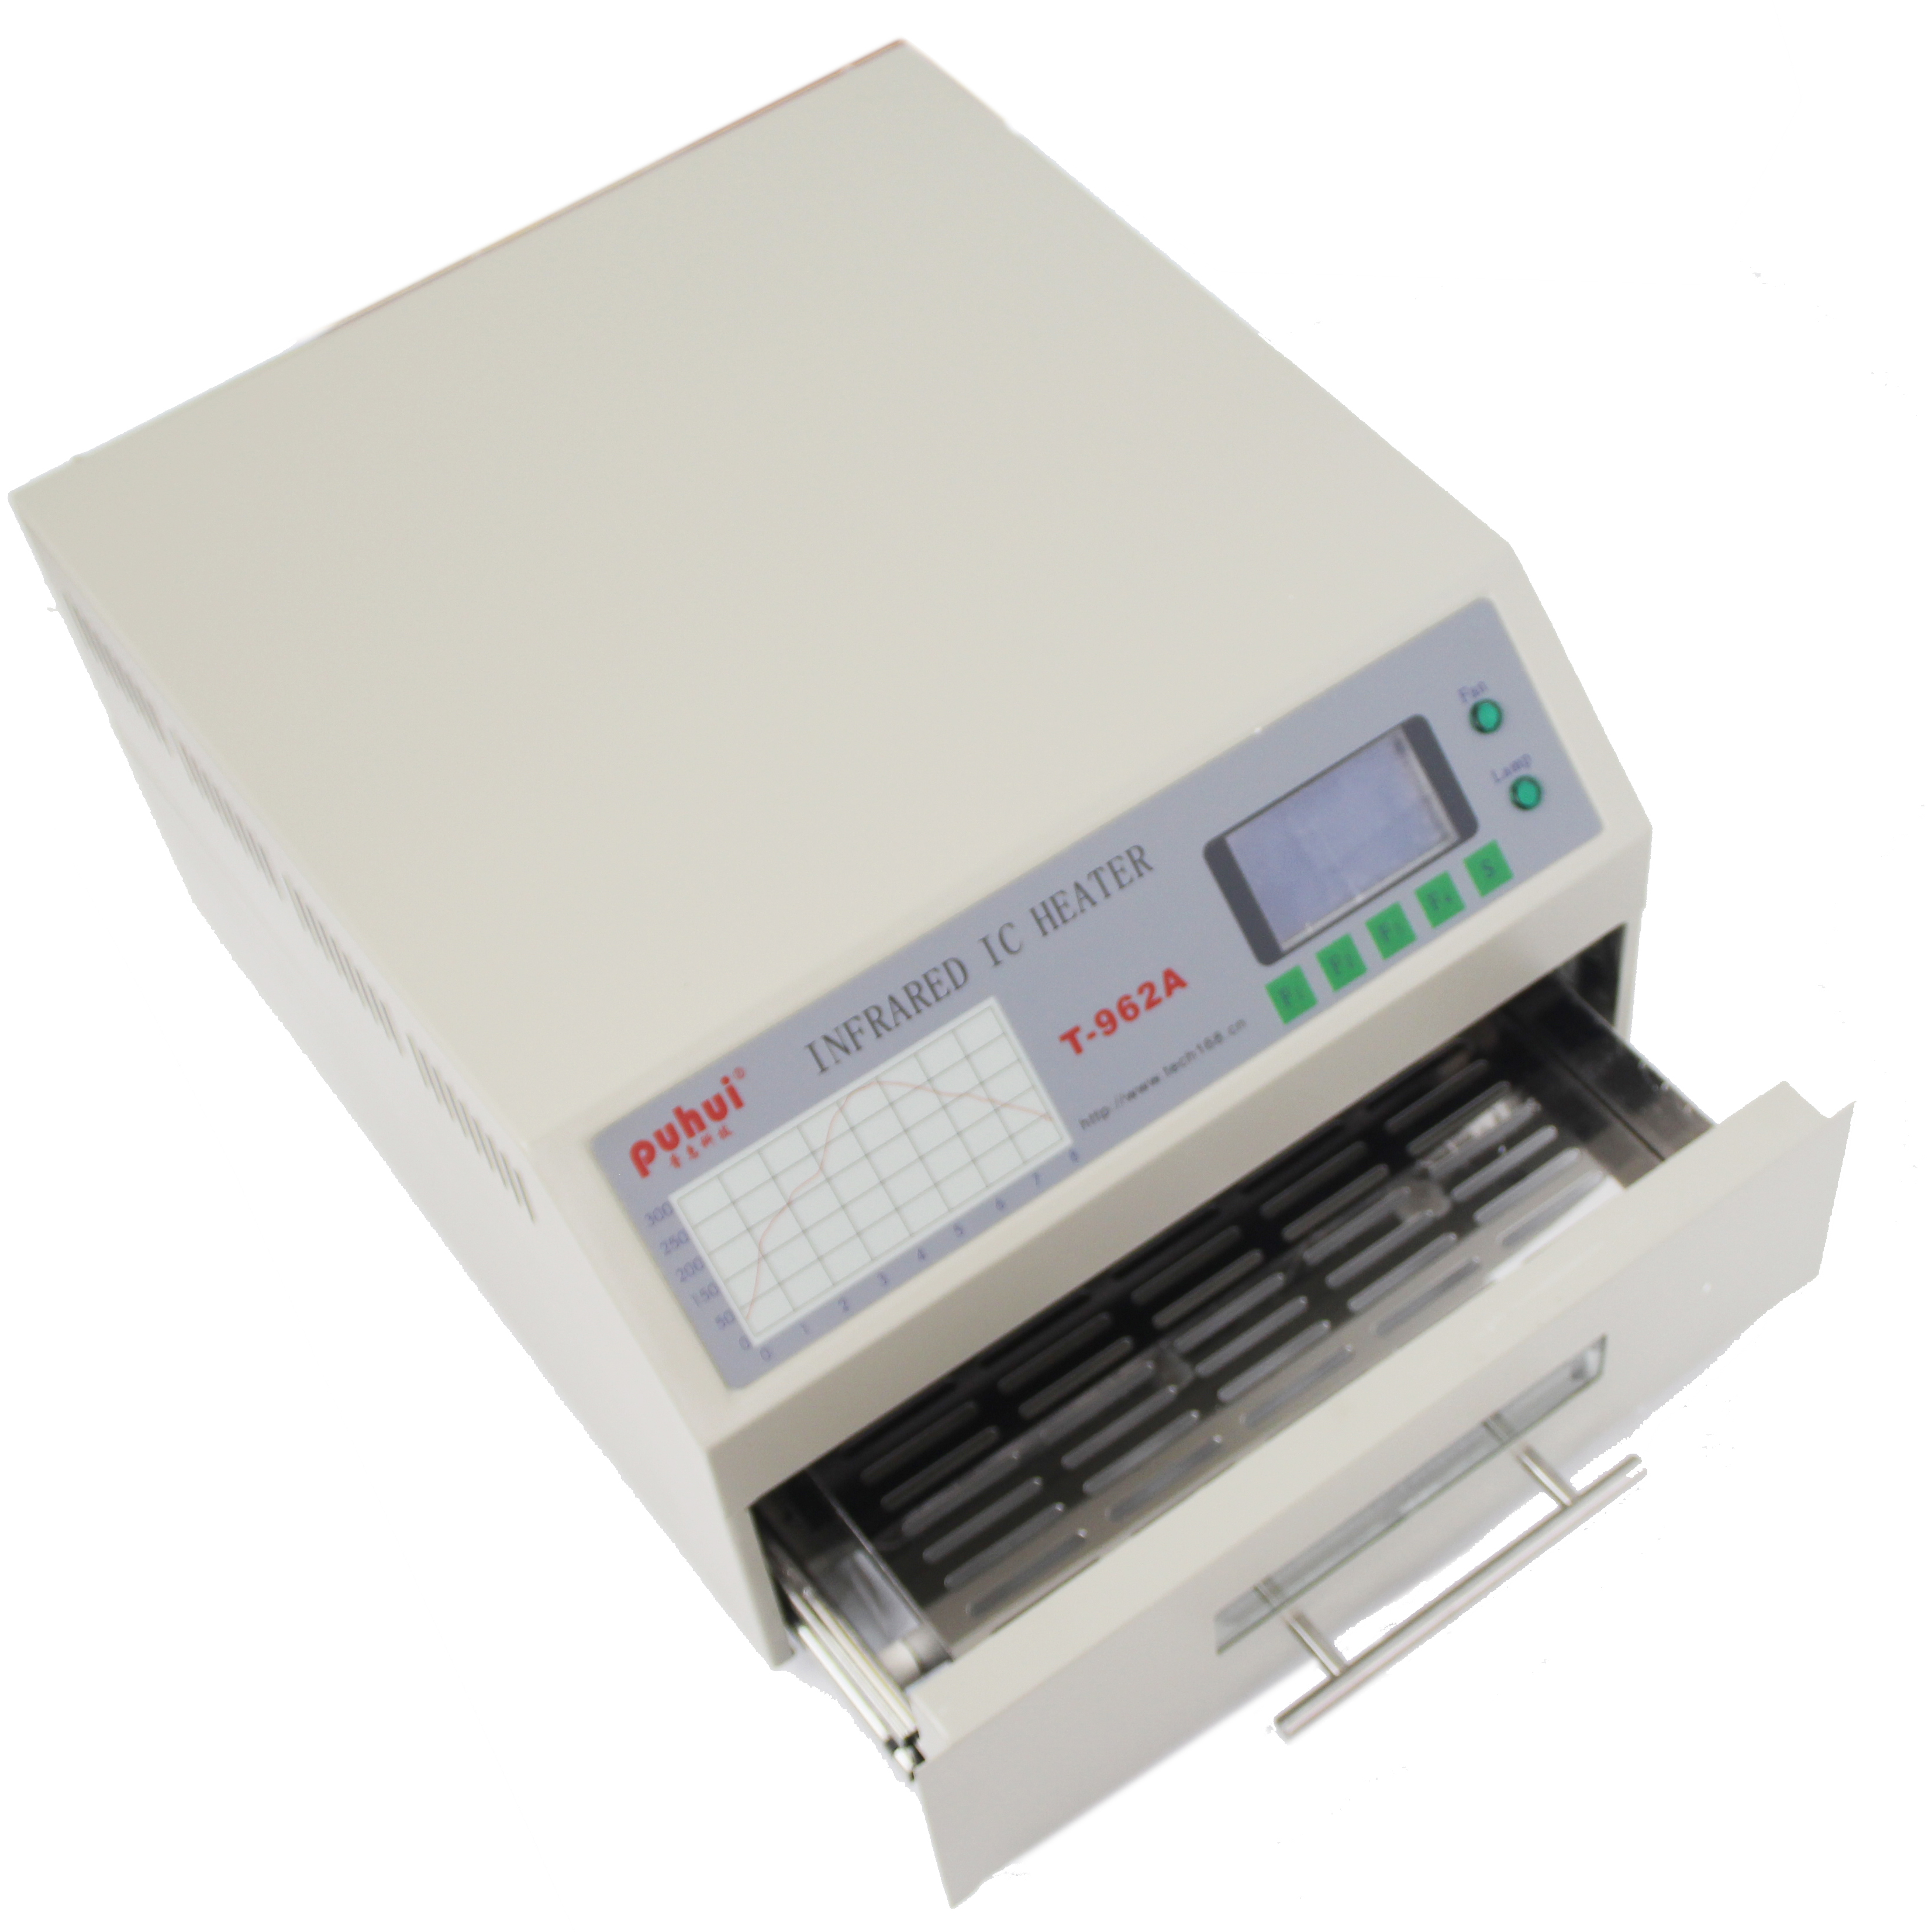 T-962 Desktop Reflow Oven Infrared IC Heater Soldering Machine 800W 180 X 235mm T962 For BGA SMD SMT Rework